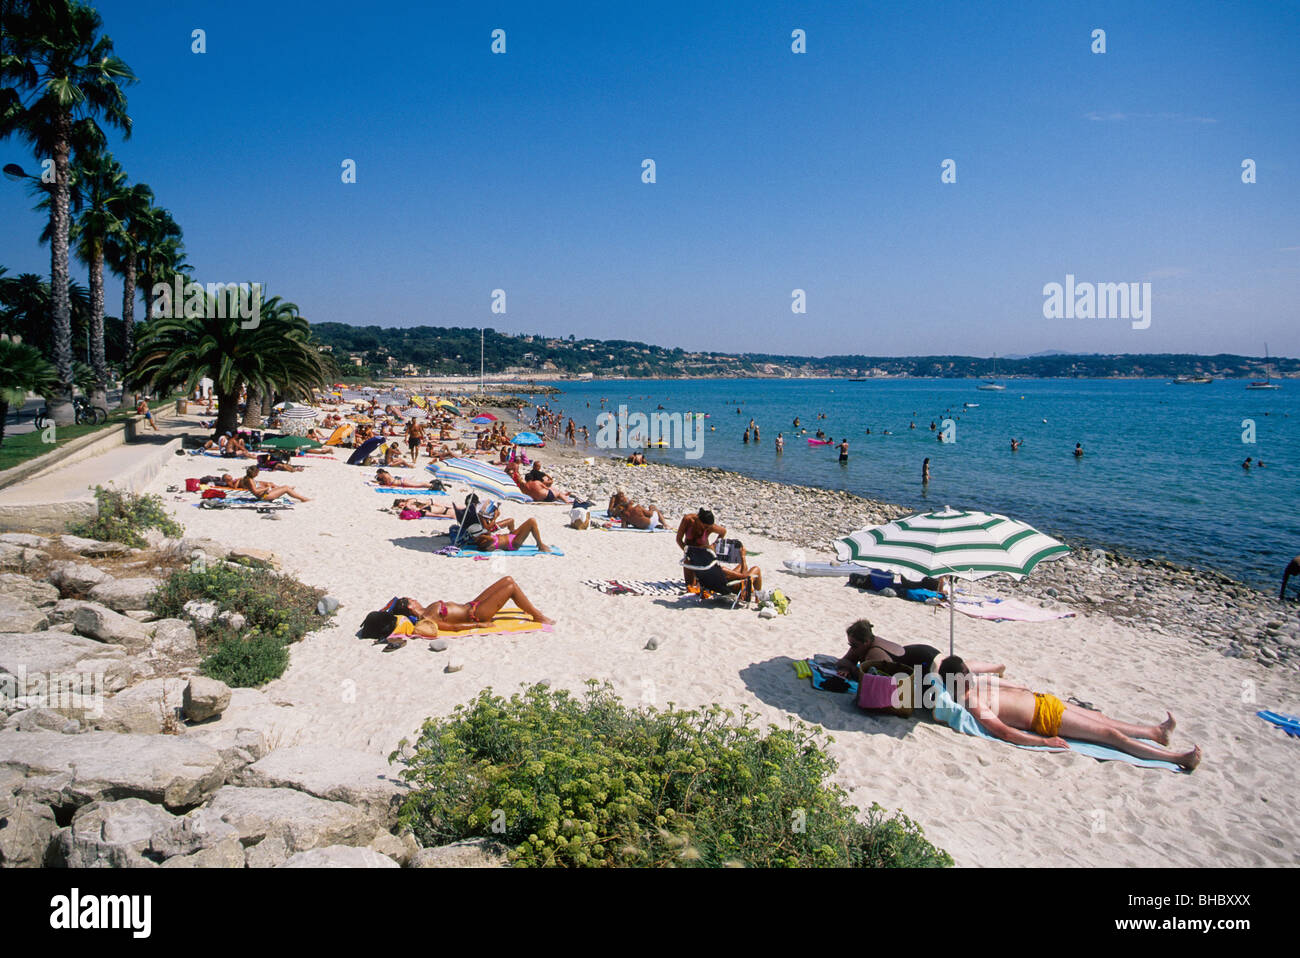 Beaches In Southern France Near Bandol Lively Holidays Scene In August